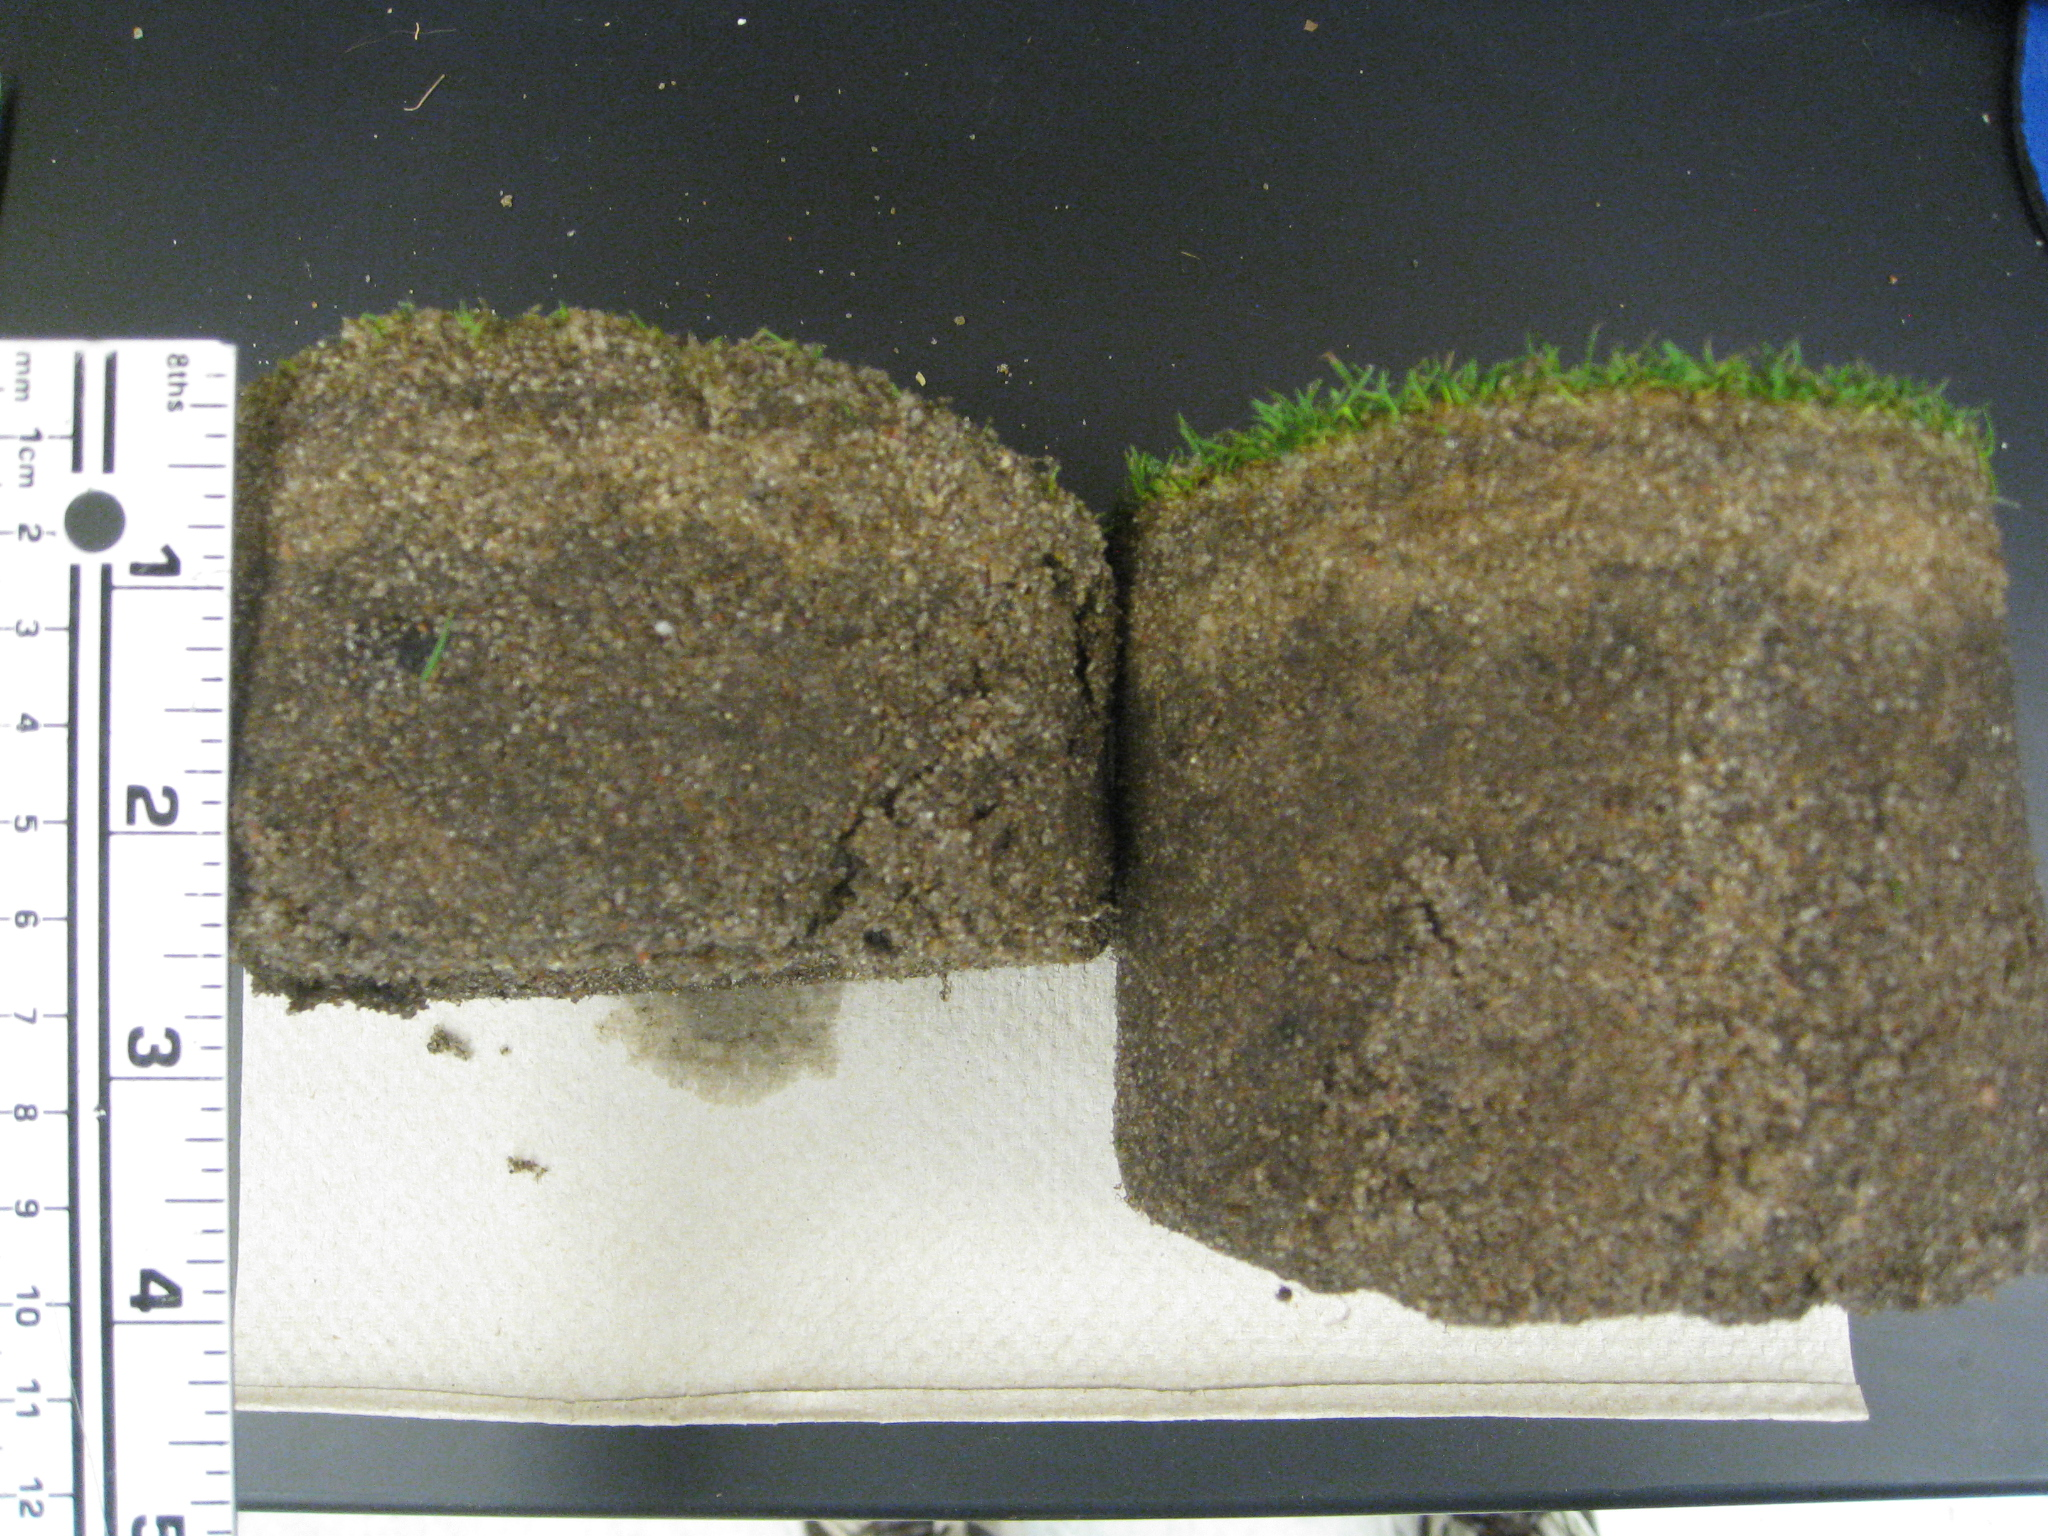 Summer weather can be ruthless when the turf is stressed ...